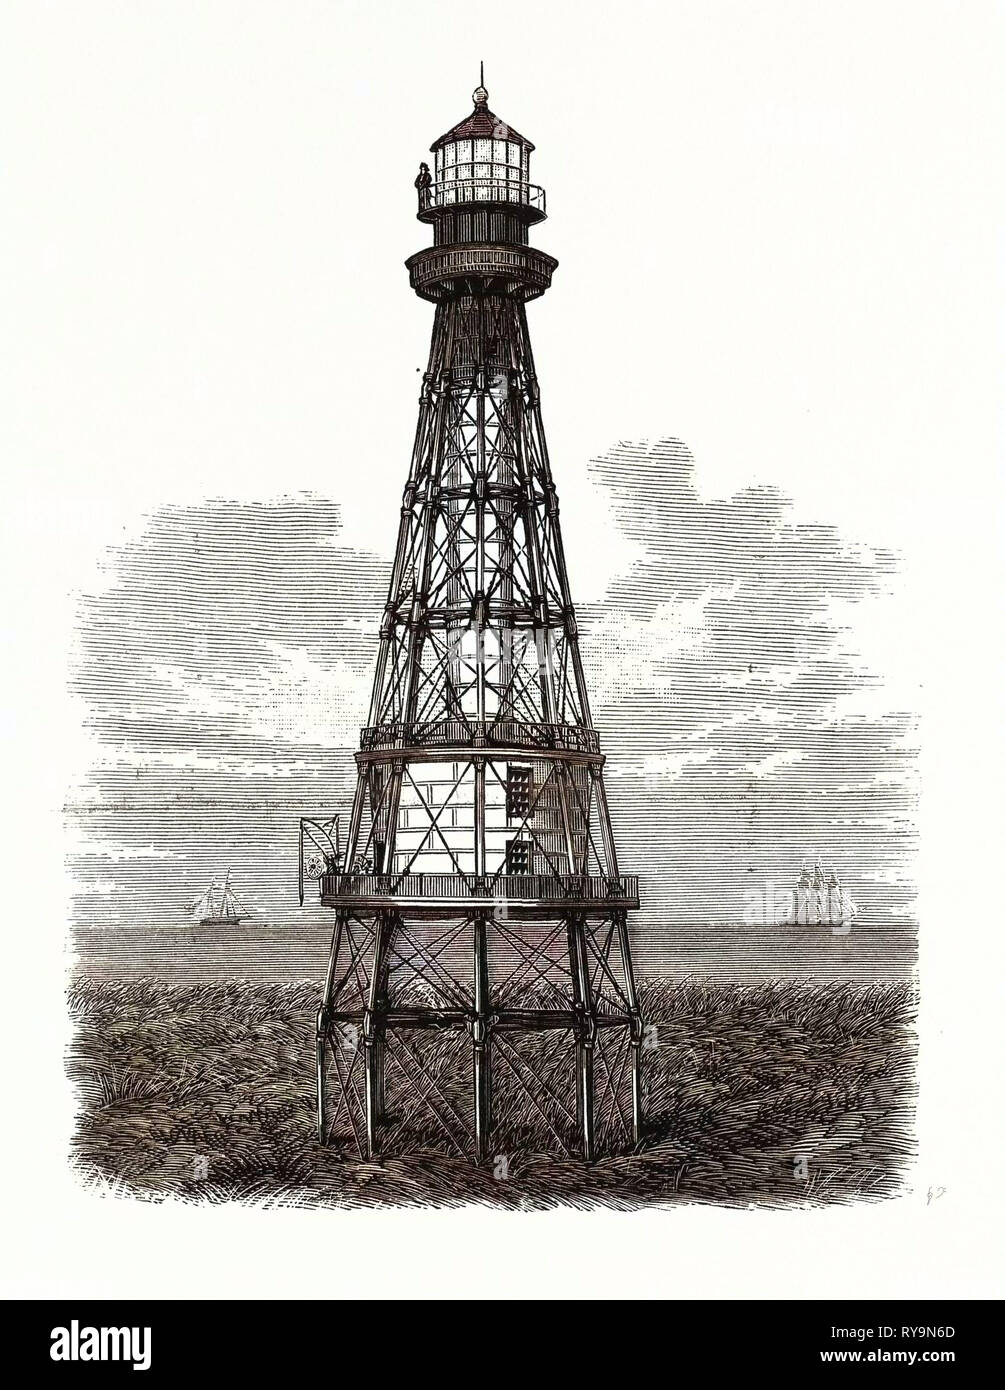 Louisiana: New Lighthouse Under Construction at South Pass, from Designs Furnished by Captain W. H. Heuer, Lighthouse Engineer. U.S., Engraving 1880 1881 - Stock Image